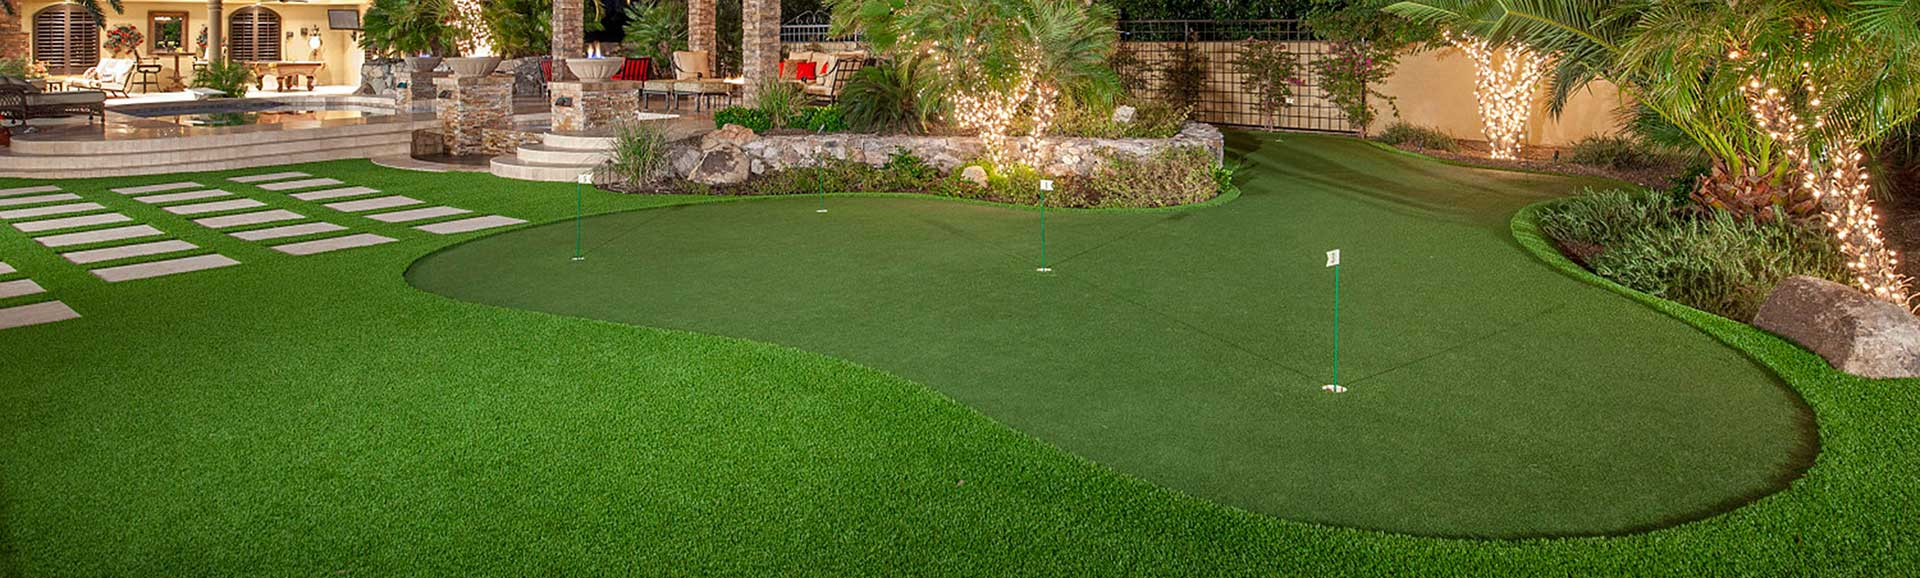 Artificial Turf Dallas